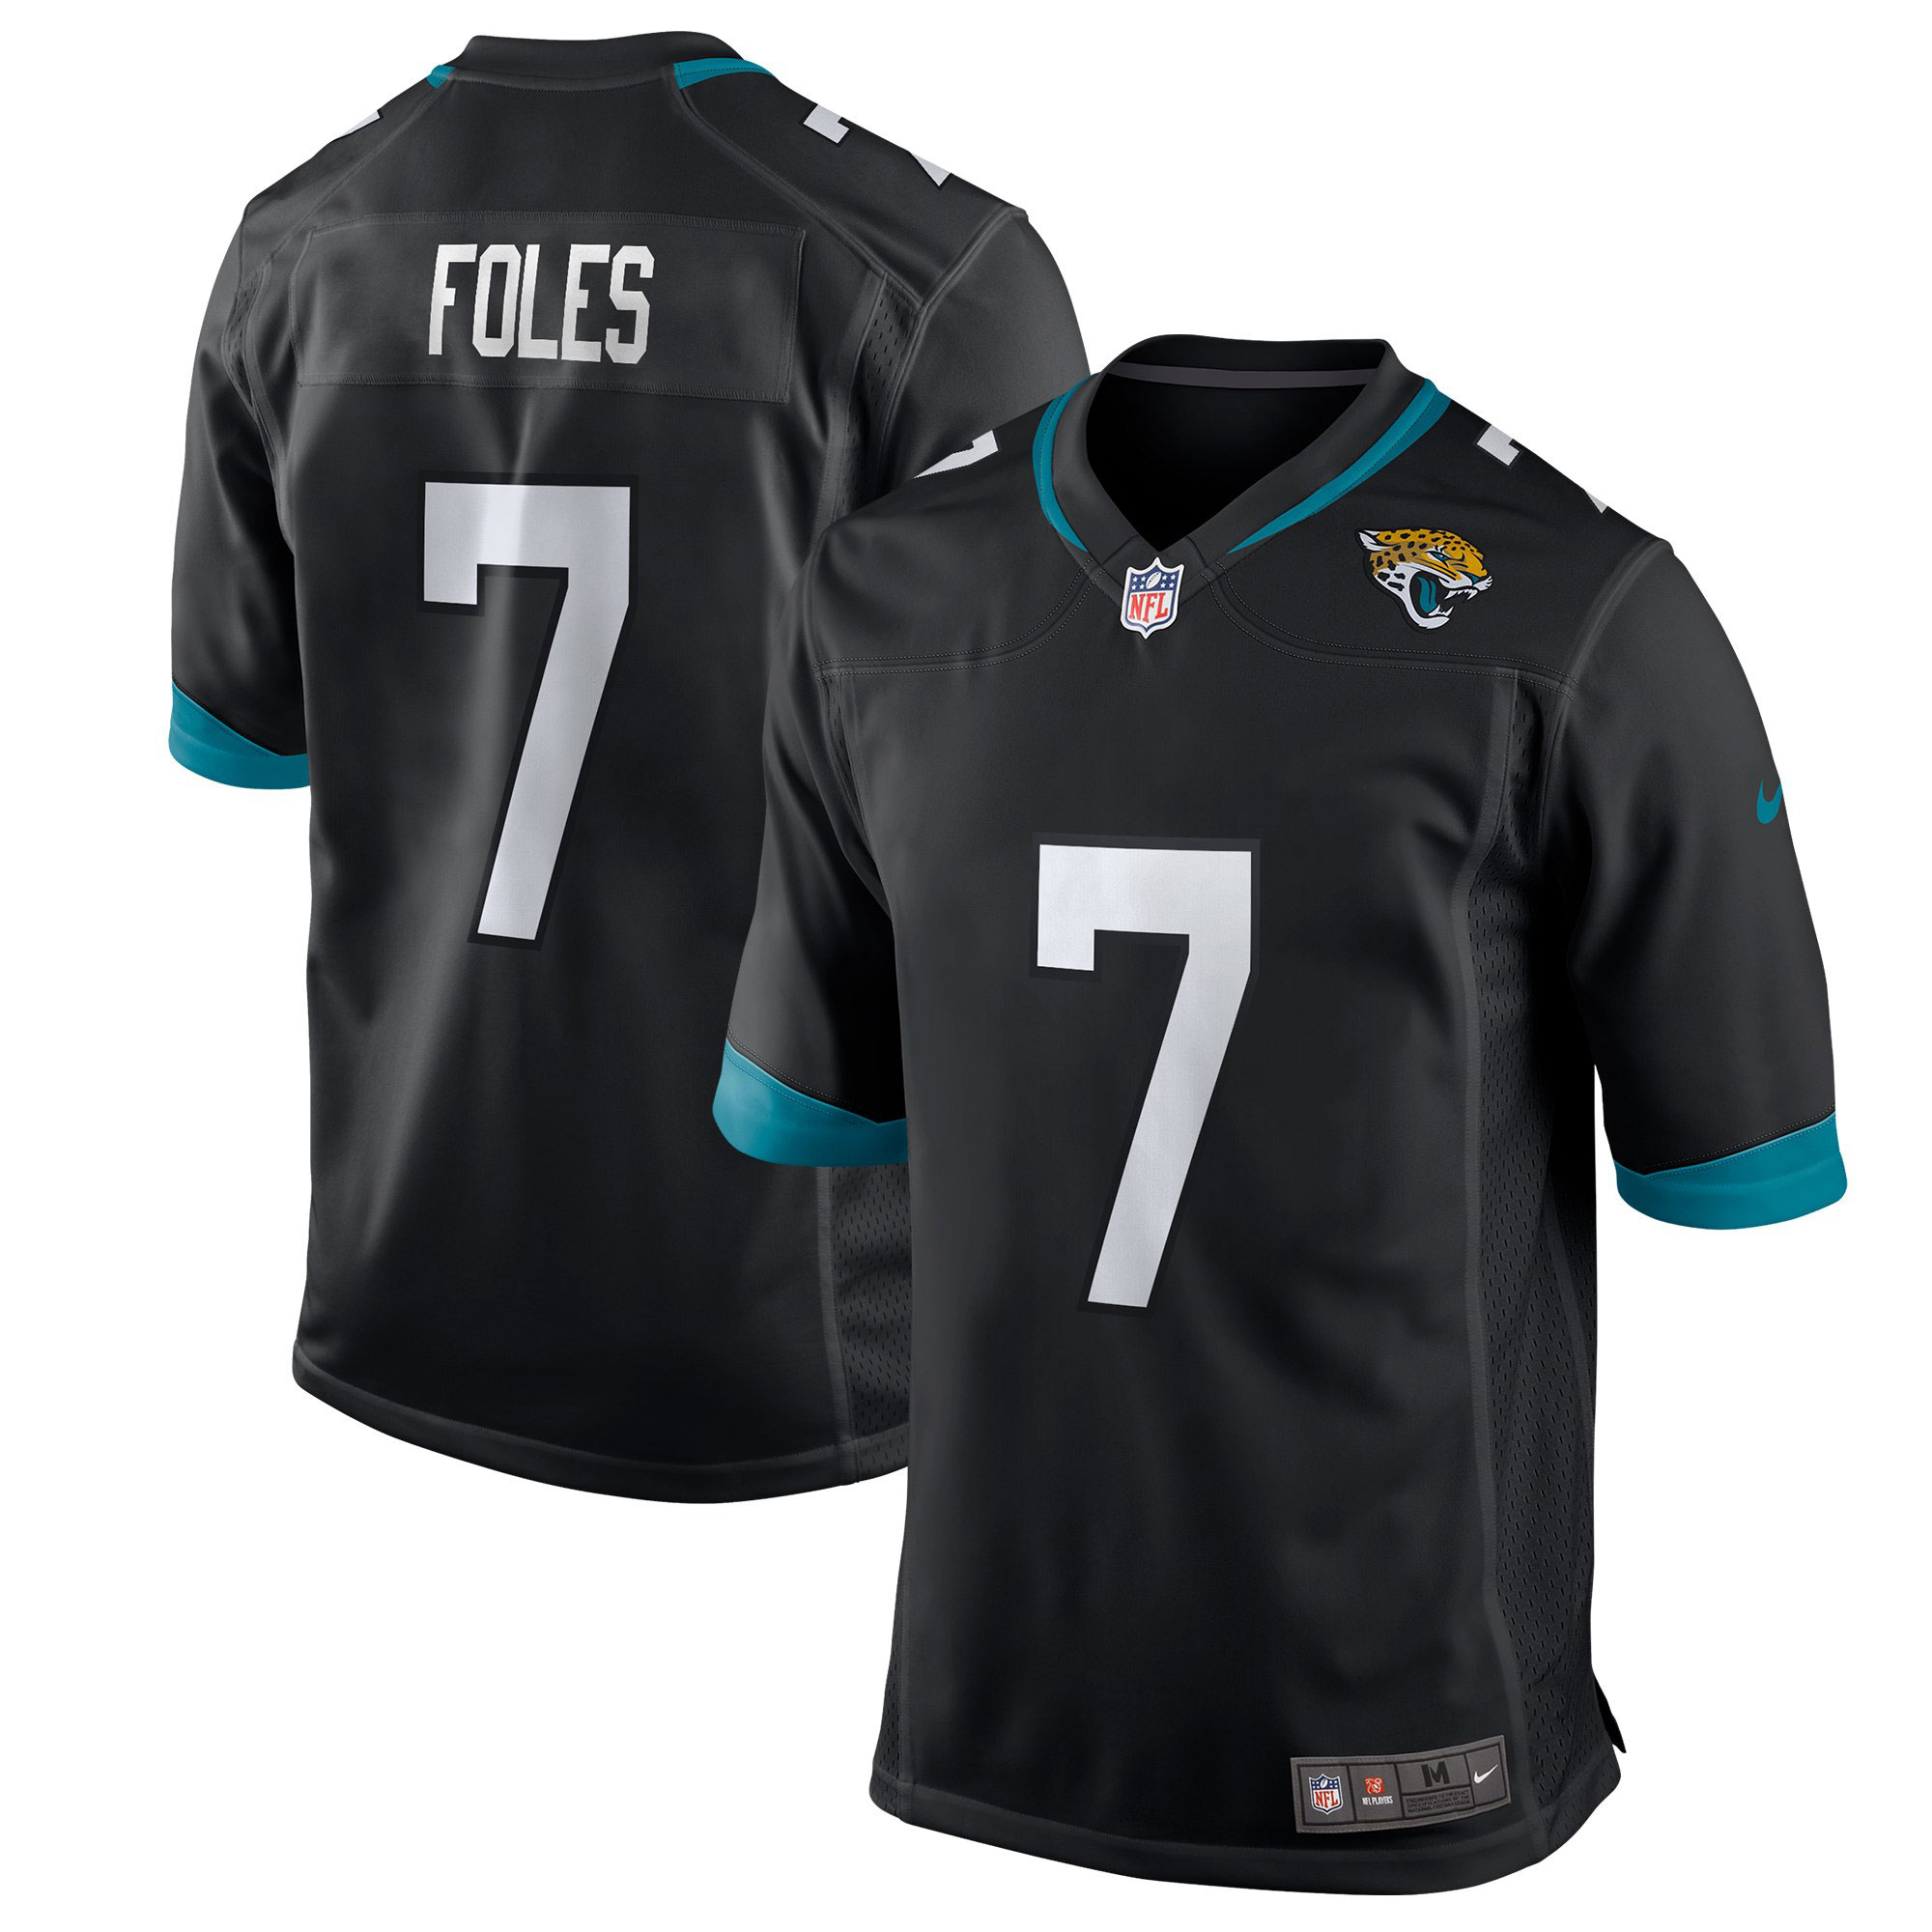 Home Game Jersey - Nick Foles - Youth